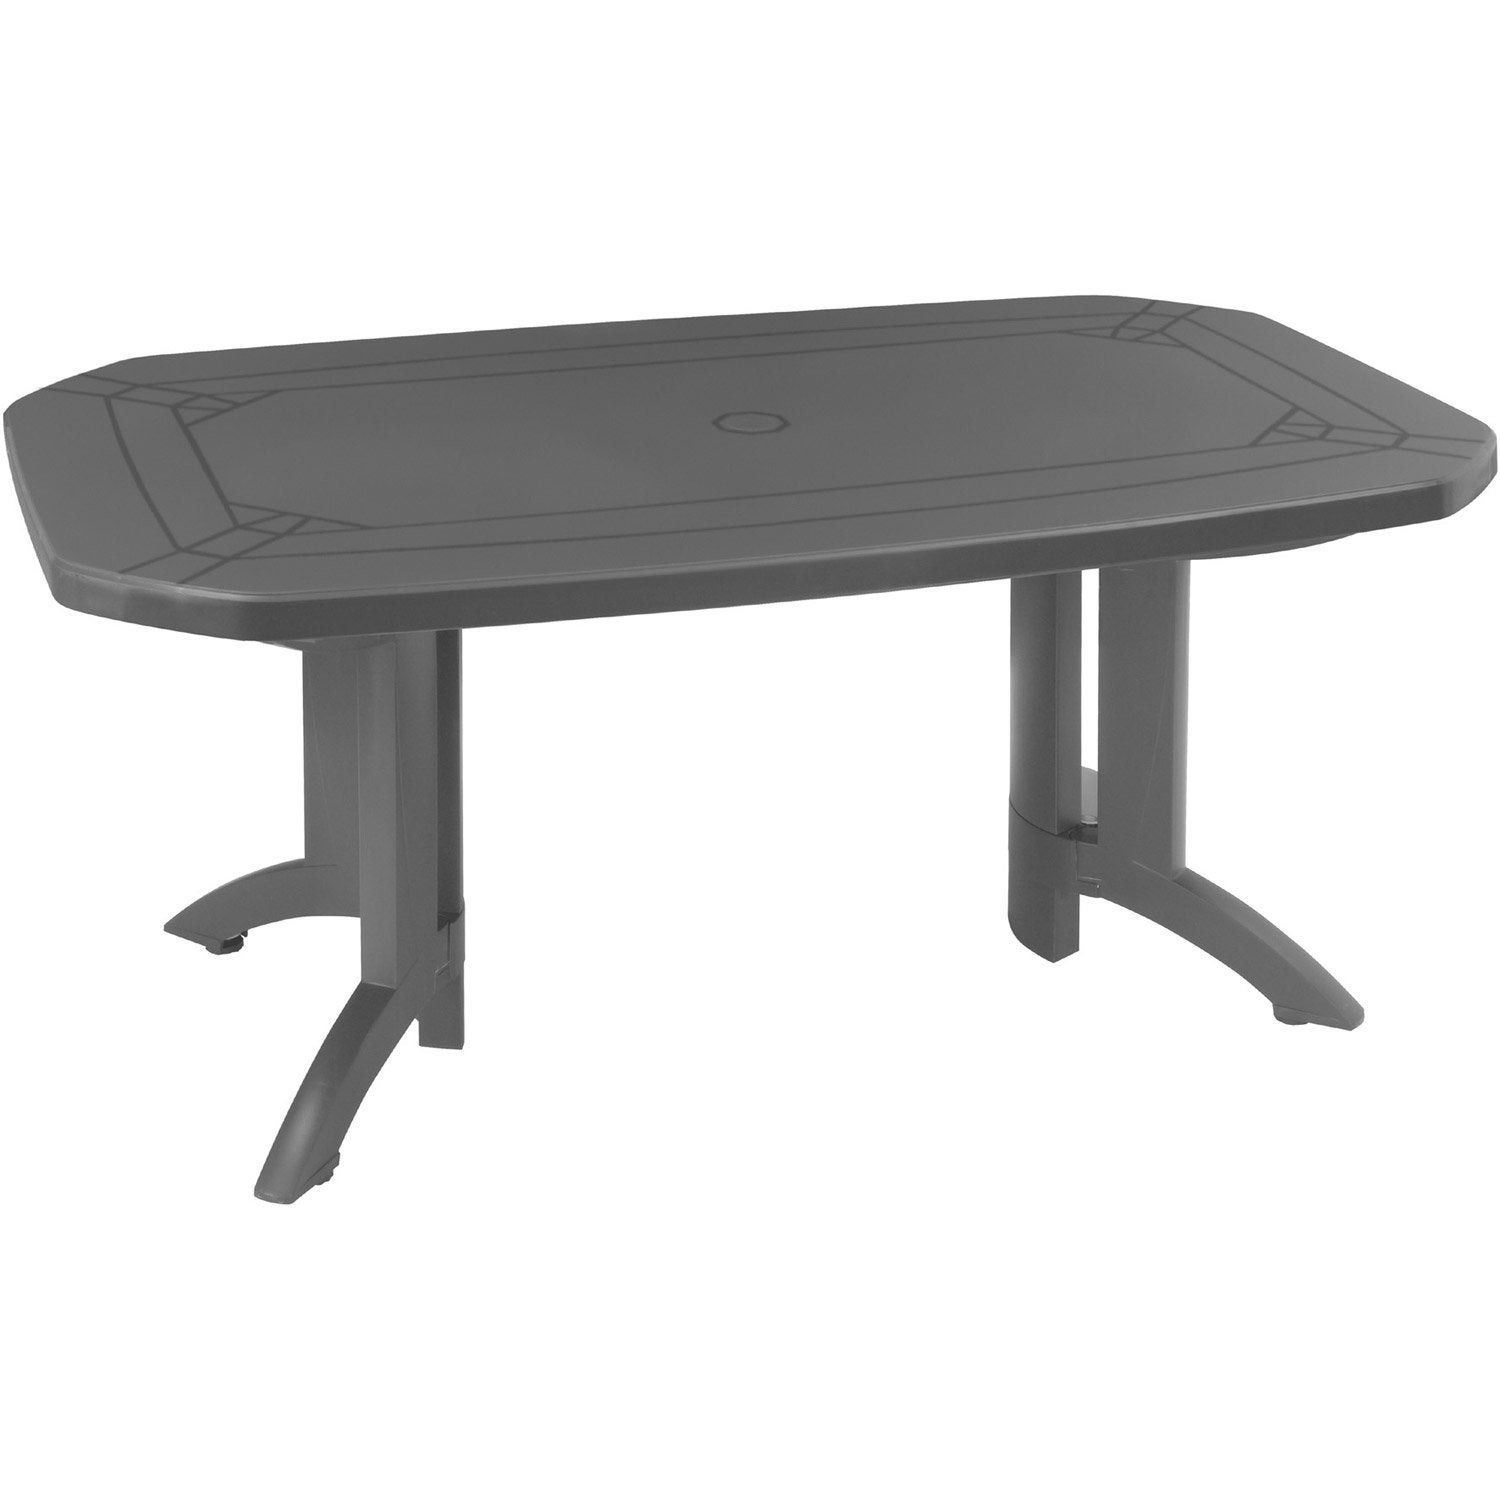 Table de jardin rectangulaire v ga grosfillex leroy merlin for Intermarche table de jardin